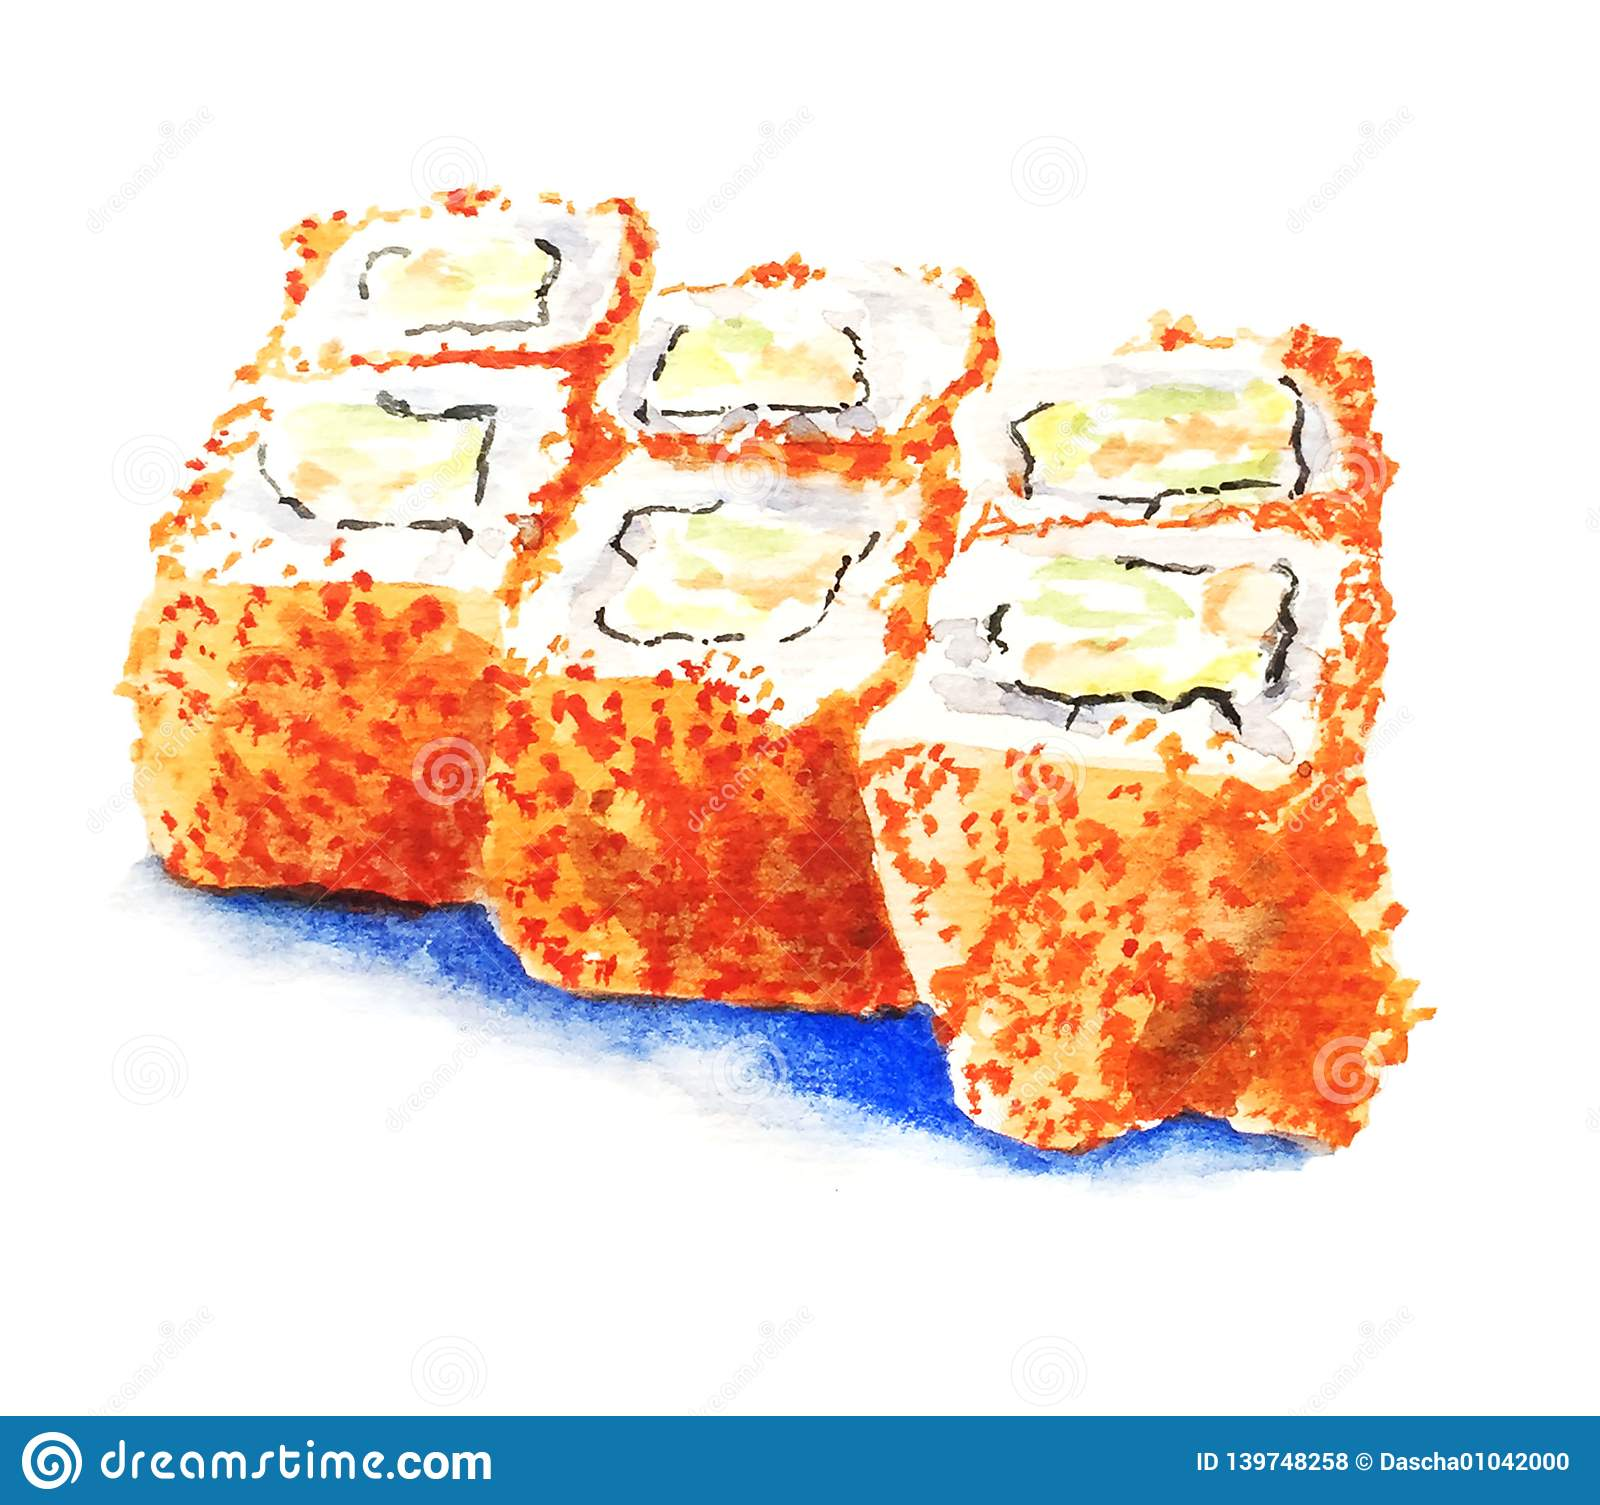 Sushi on white background watercolor illustration